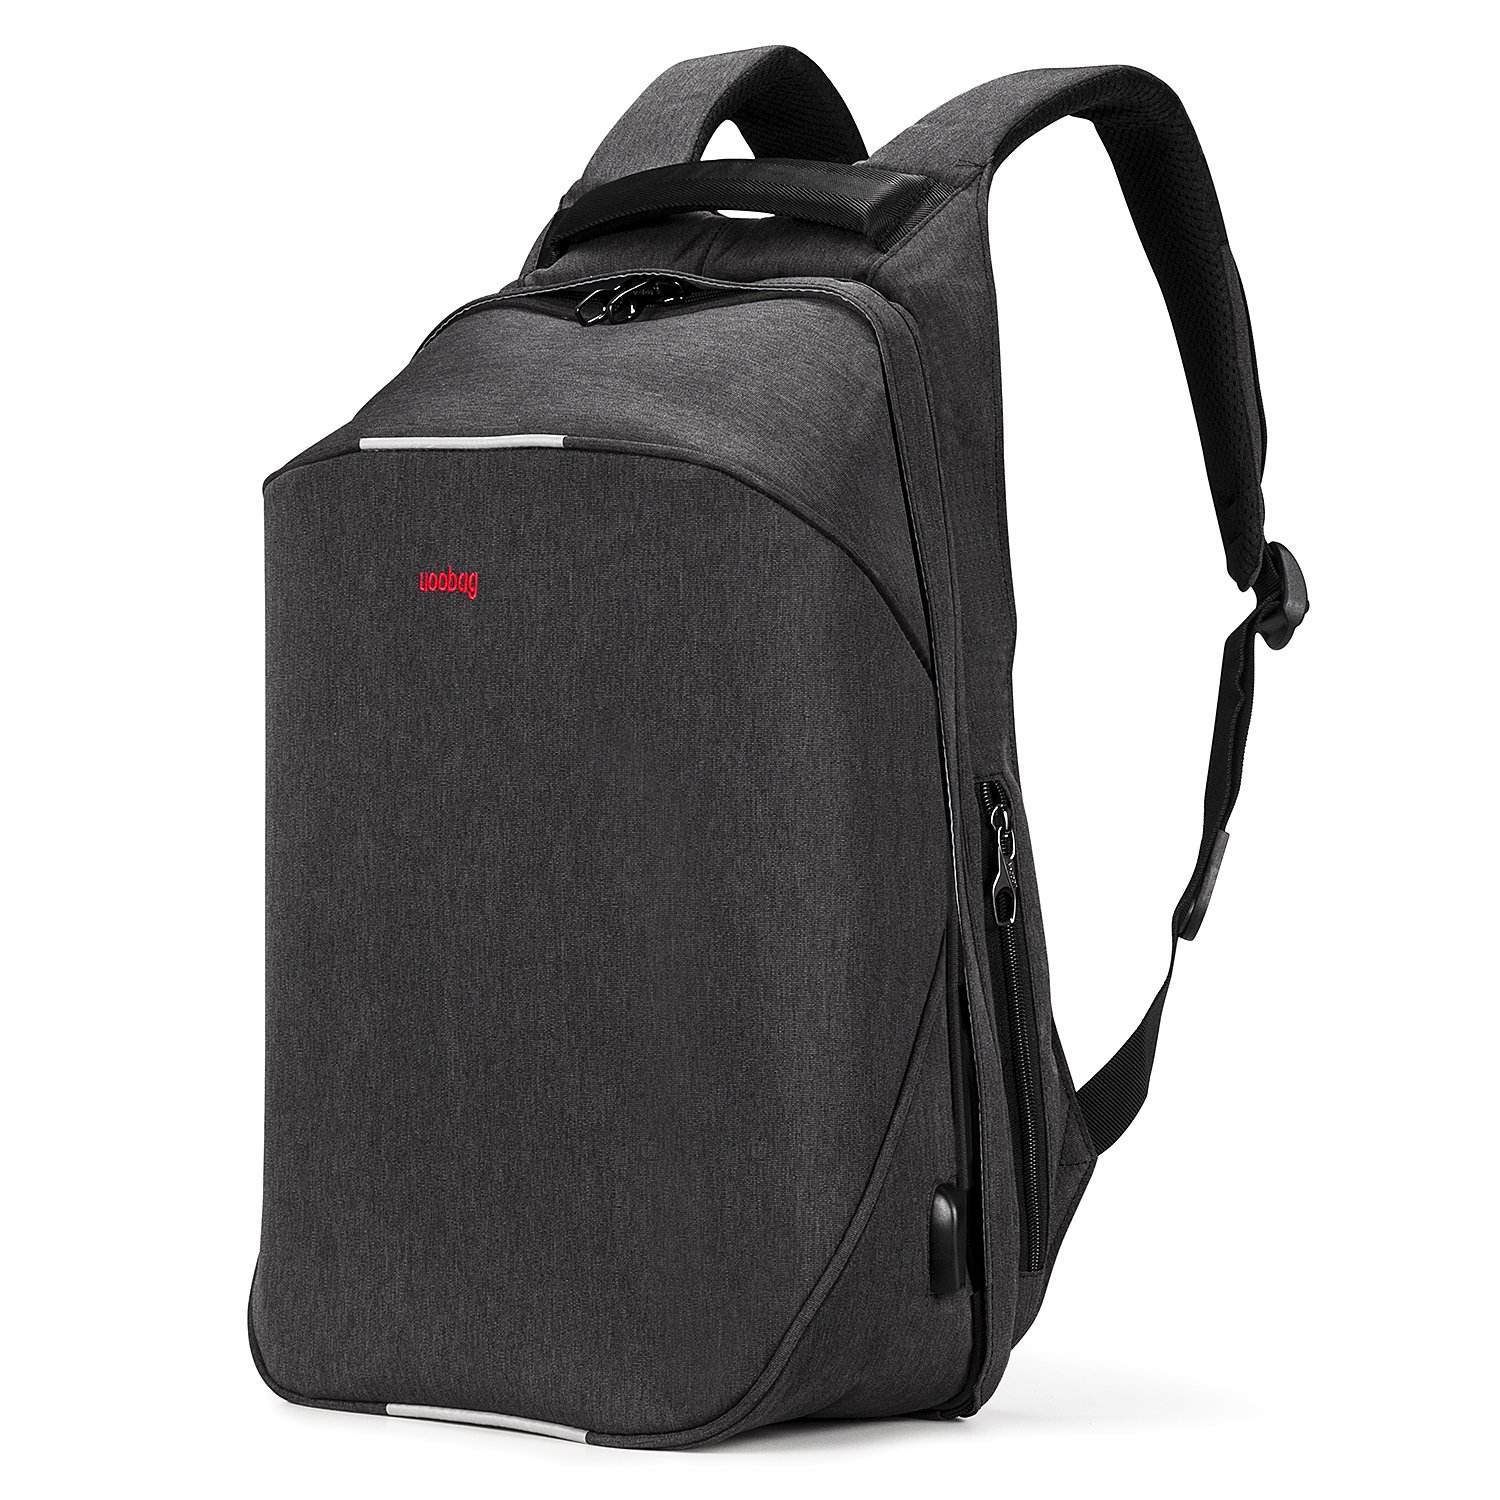 Uoobag Business Computer Waterproof Backpack